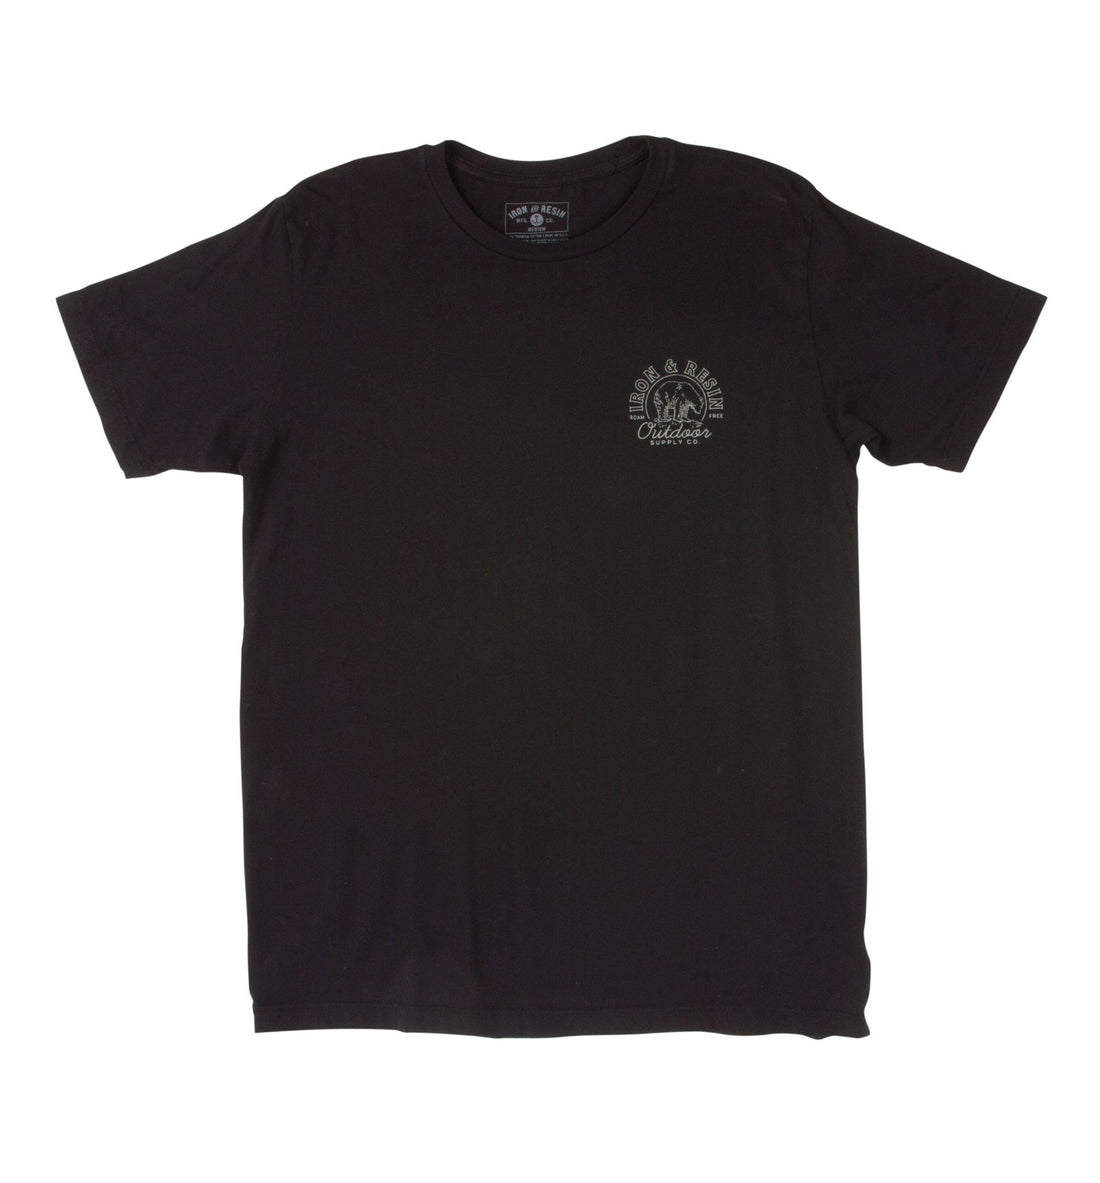 Roam Free Tee - Tops - Iron and Resin